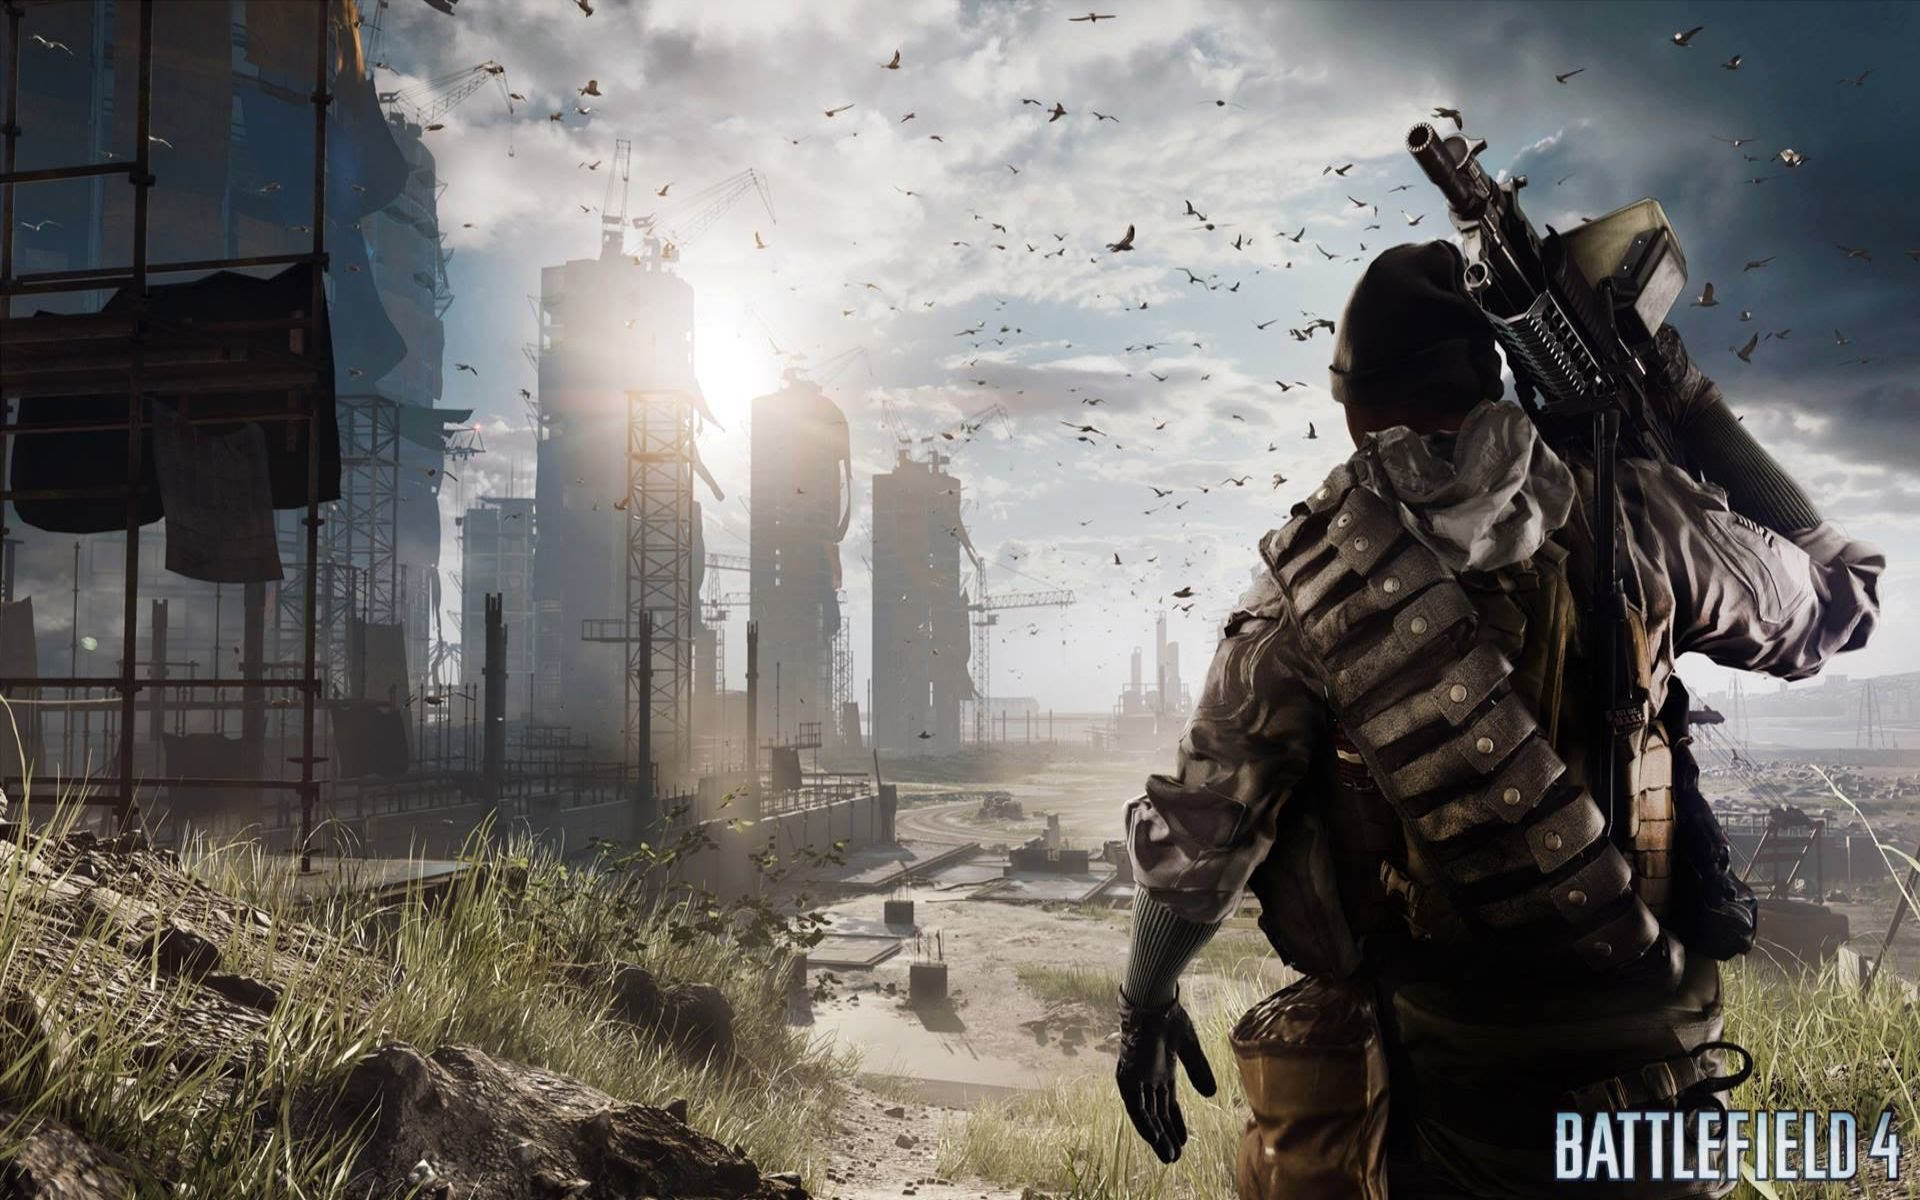 Battlefield 4 wallpapers best wallpapers - Bf4 wallpaper ...